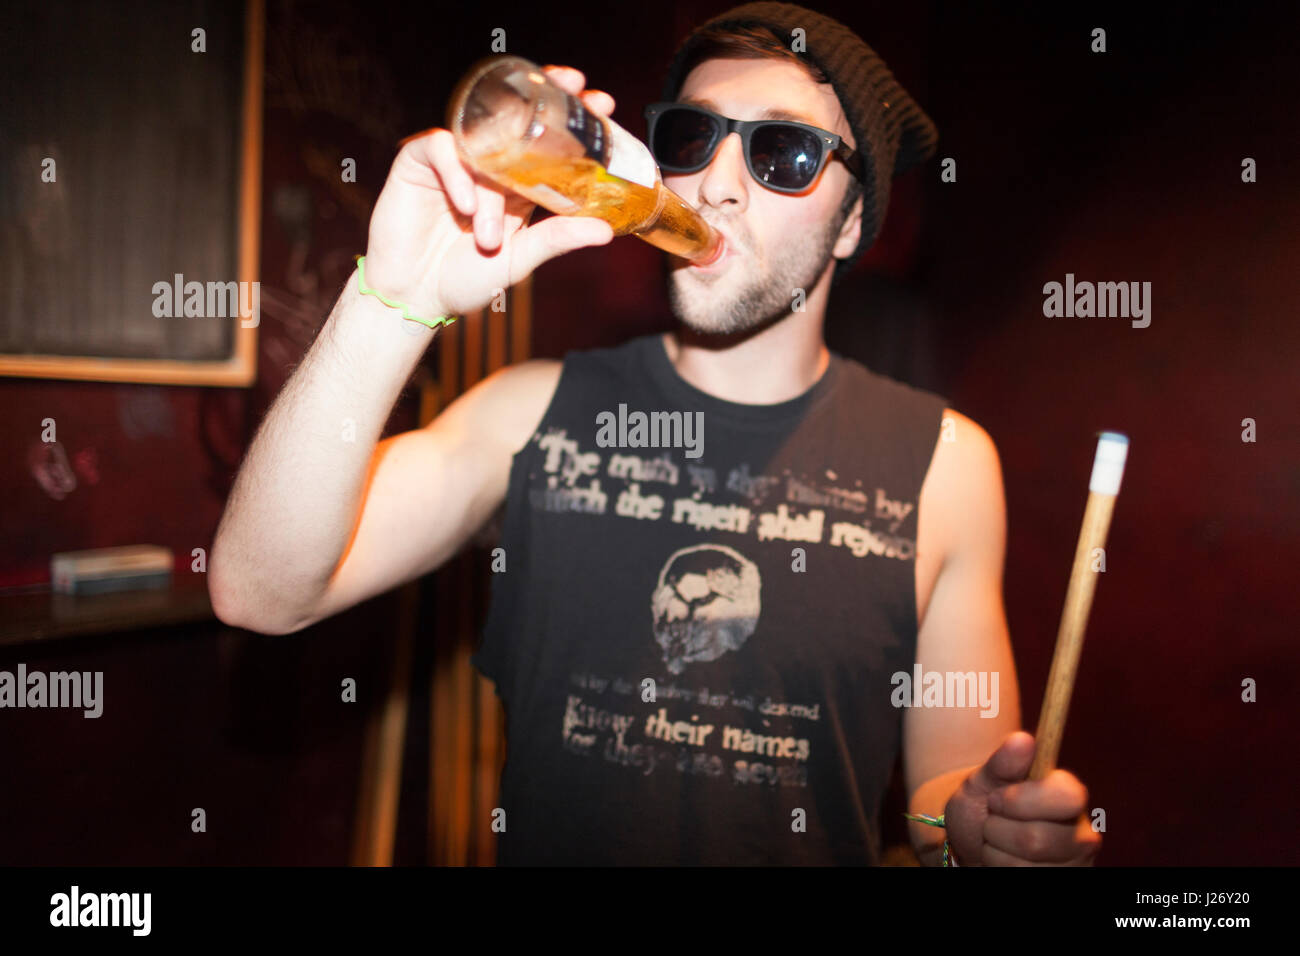 Young man drinking a beer - Stock Image